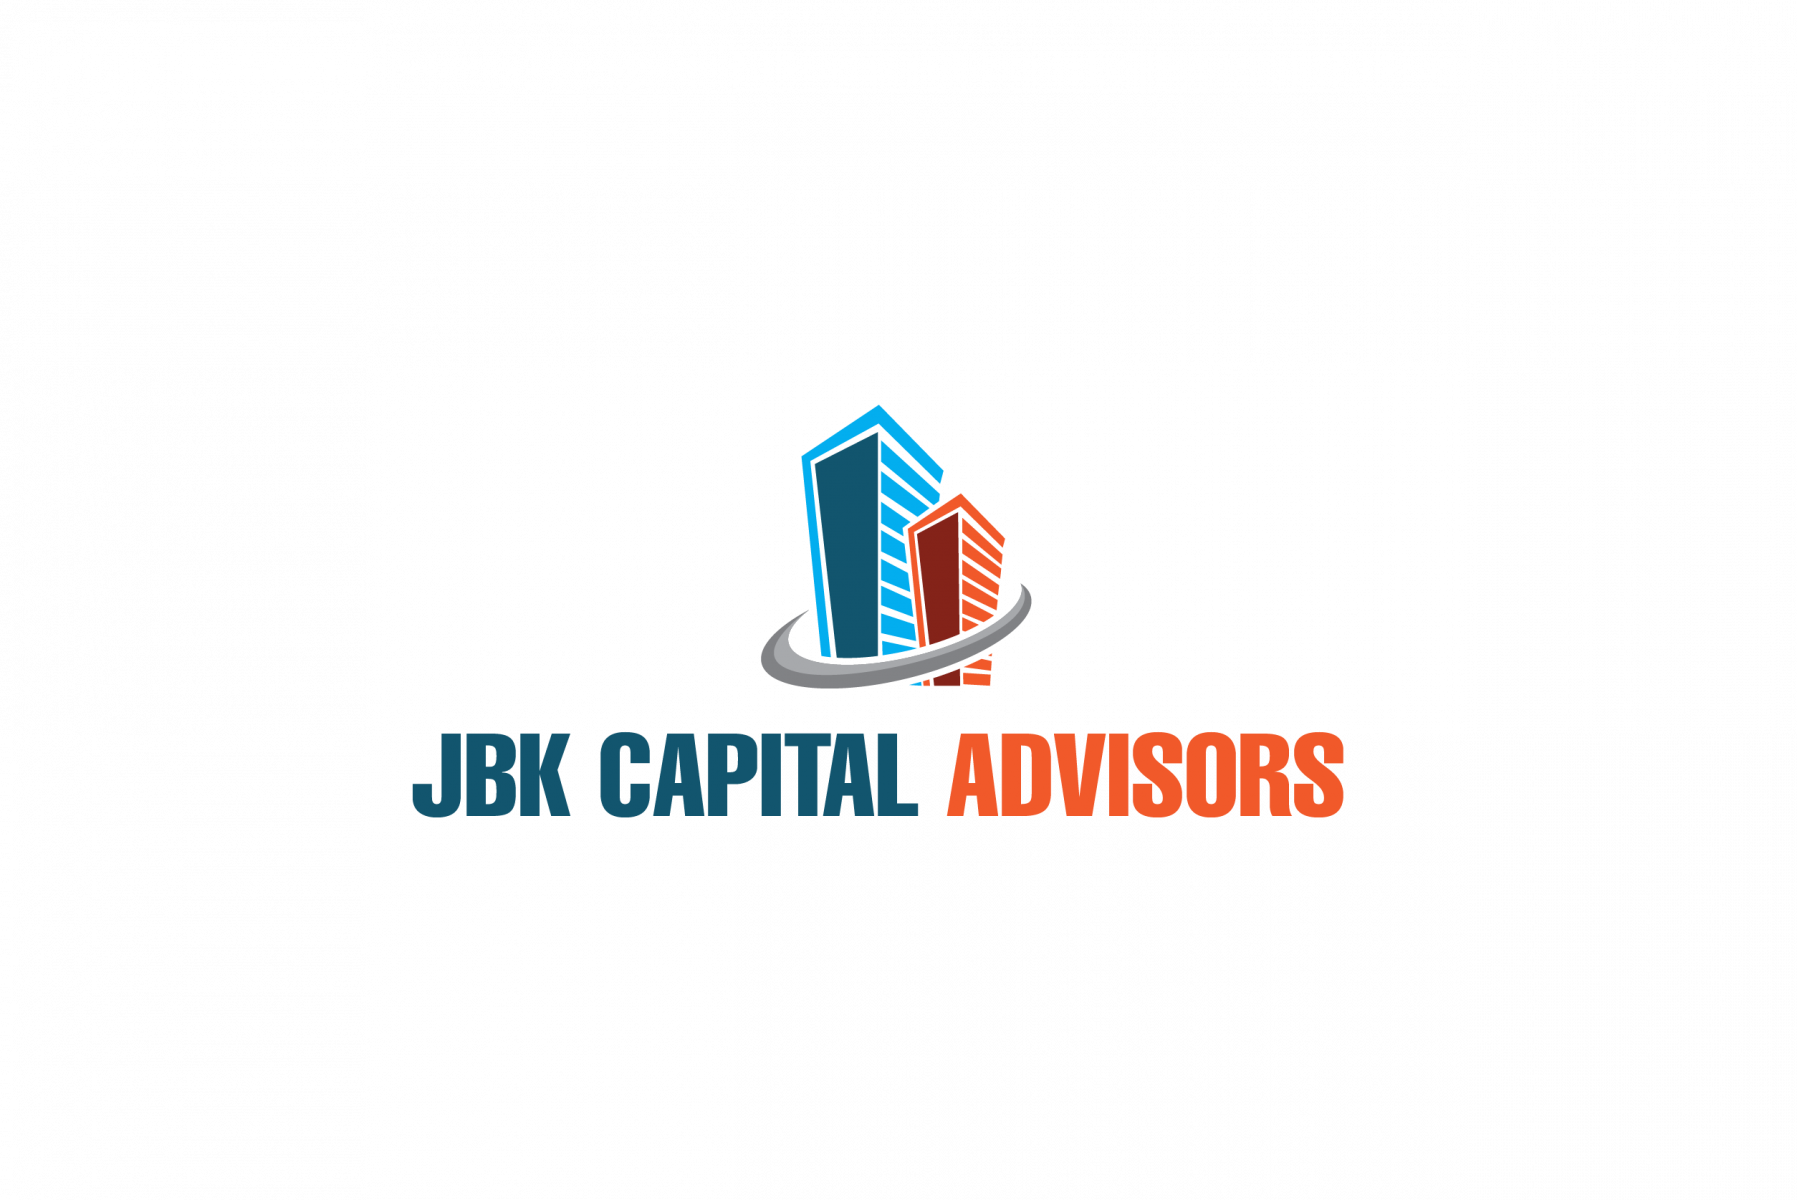 JBK Capital Advisors  logo